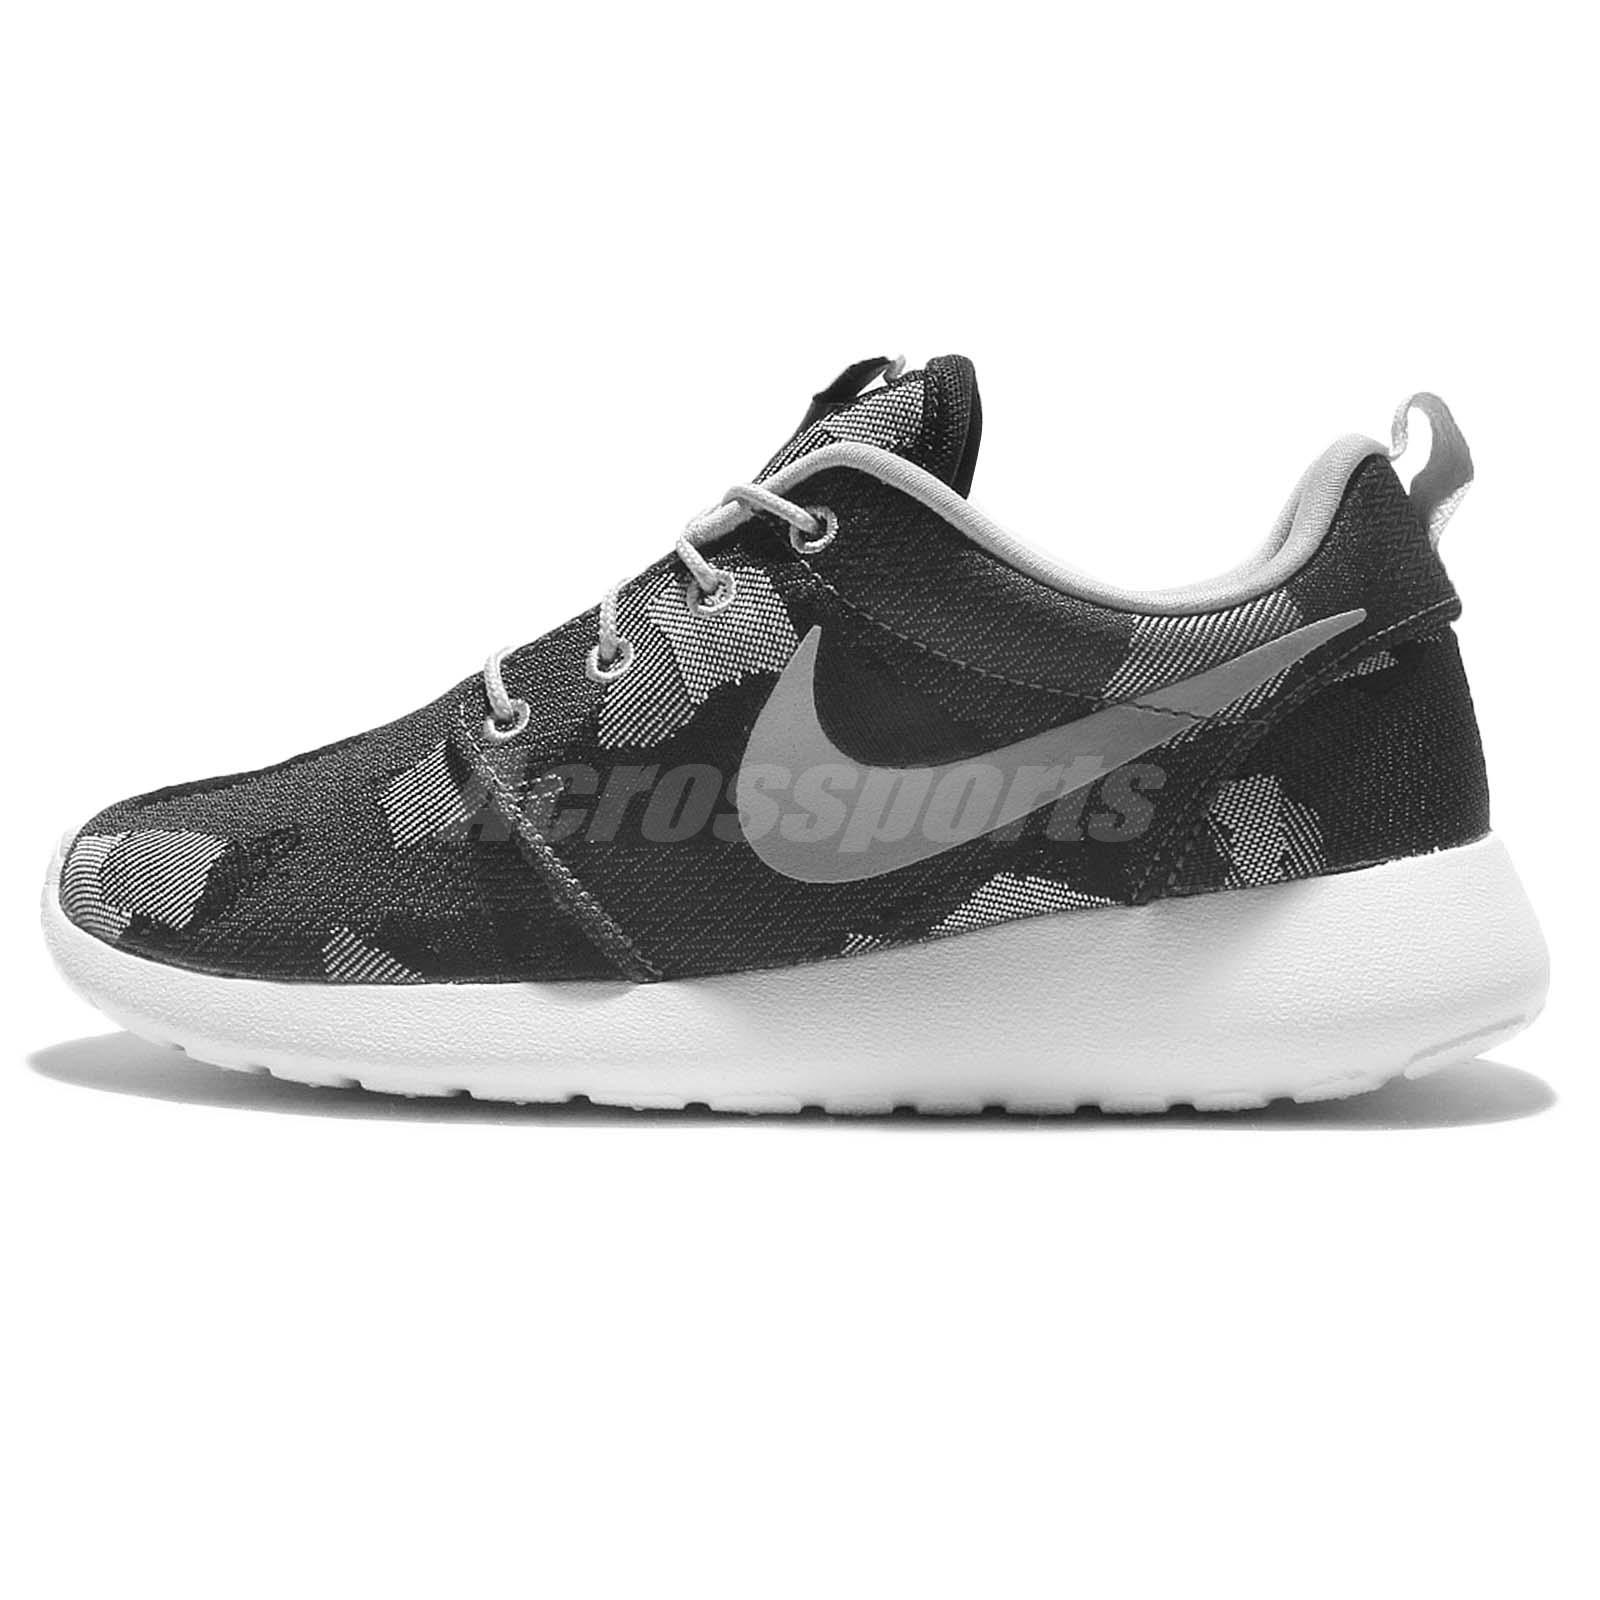 huge selection of 36dfd 6f0c8 ... Wmns Nike Roshe One JCRD Print Jacquard Grey Camo Women Running Shoes  845009-001